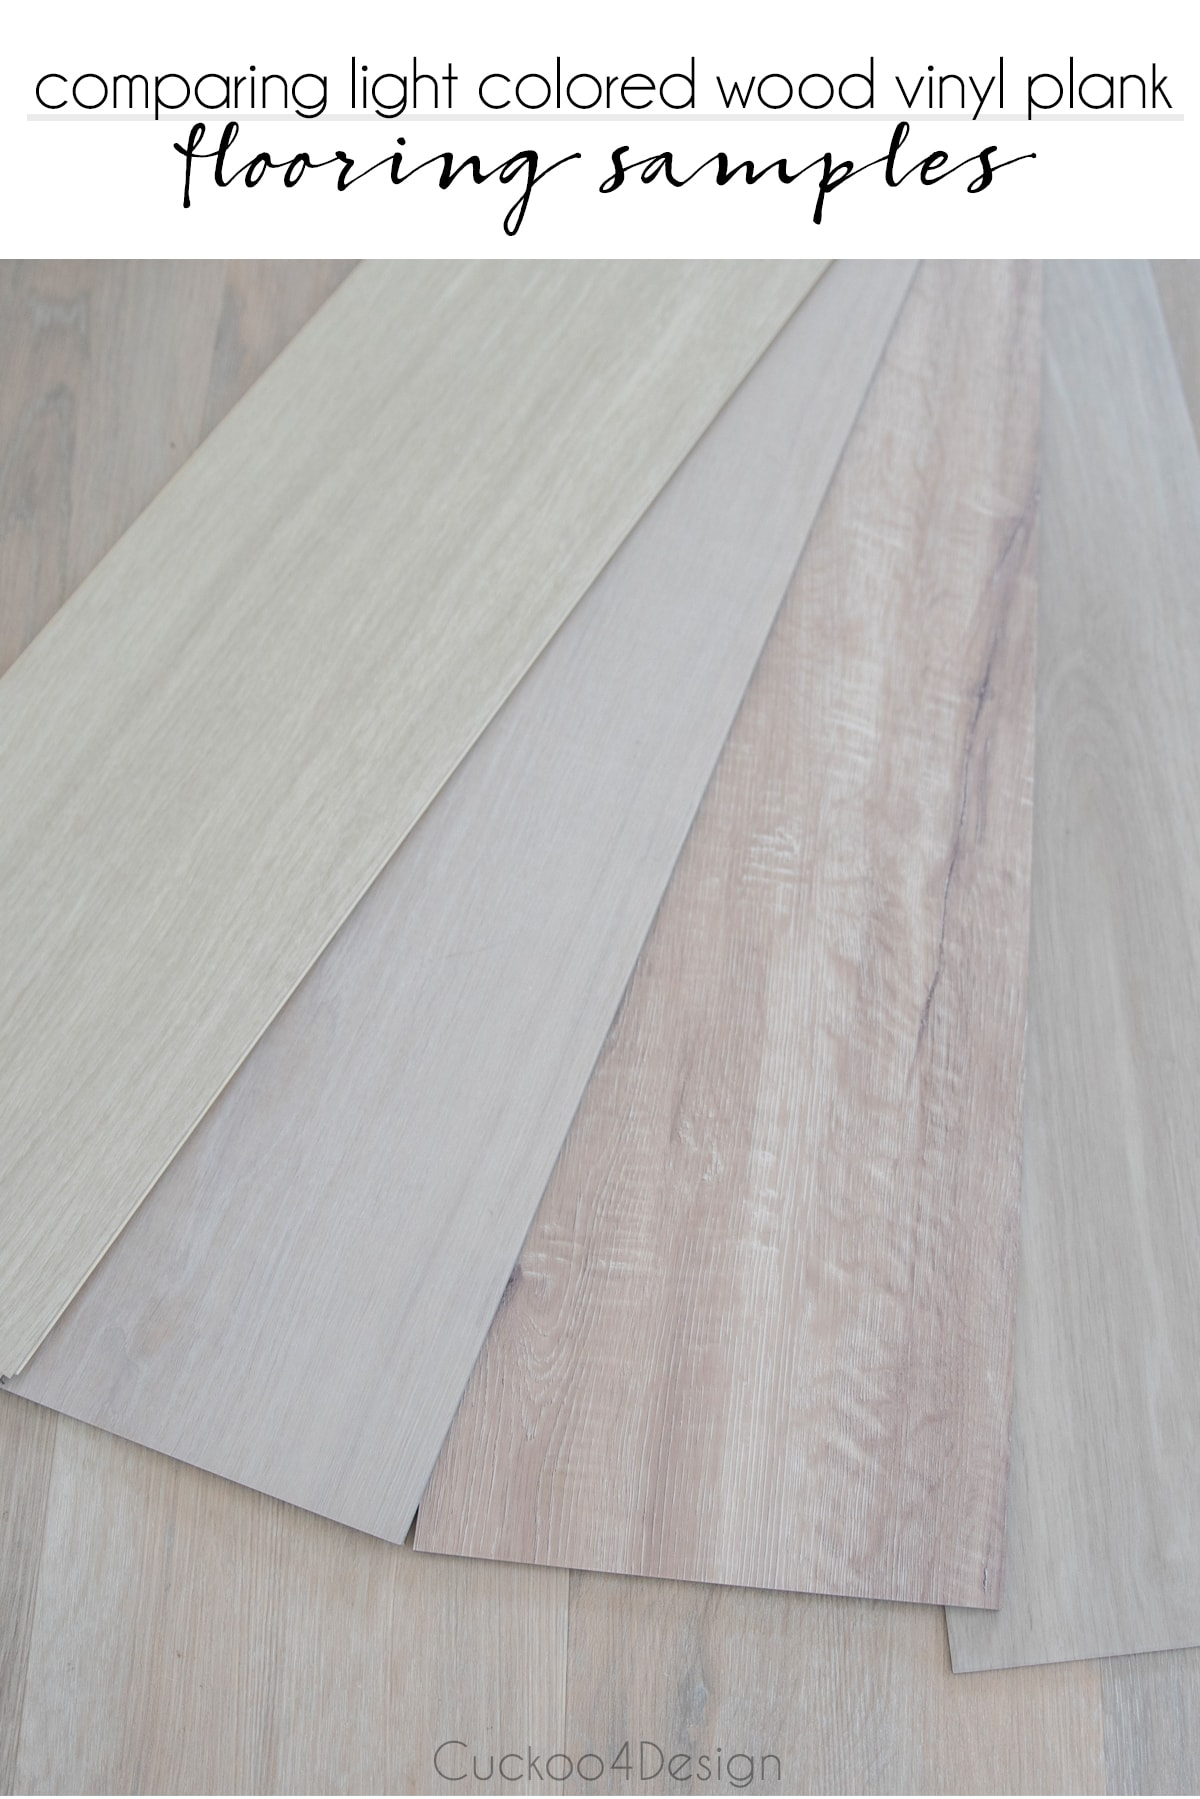 comparing different light colored wood vinyl plank flooring samples in a fan